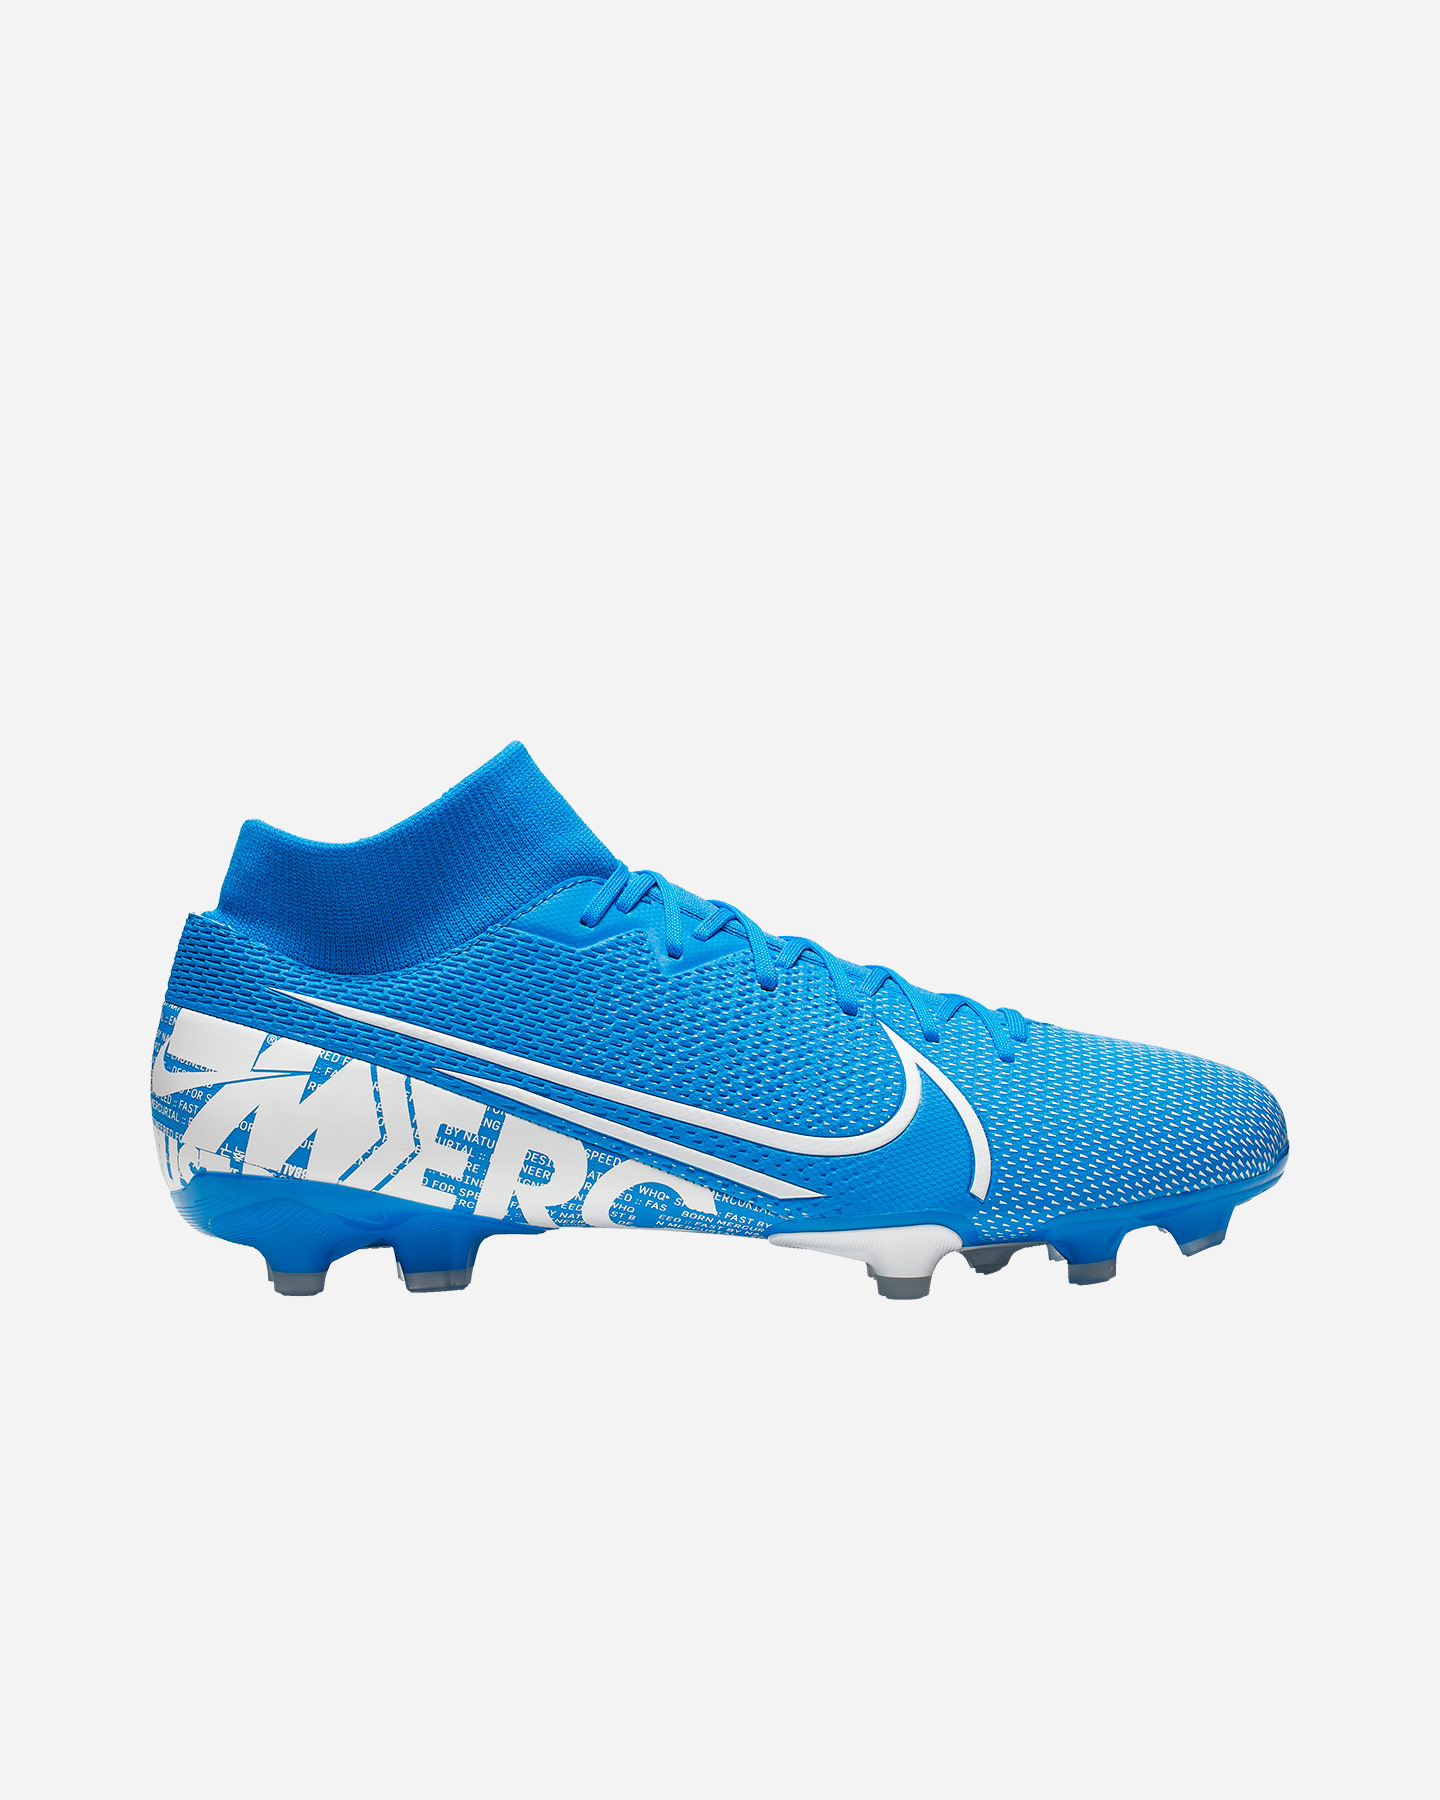 MERCURIAL SUPERFLY 7 ACADEMY FGMG M